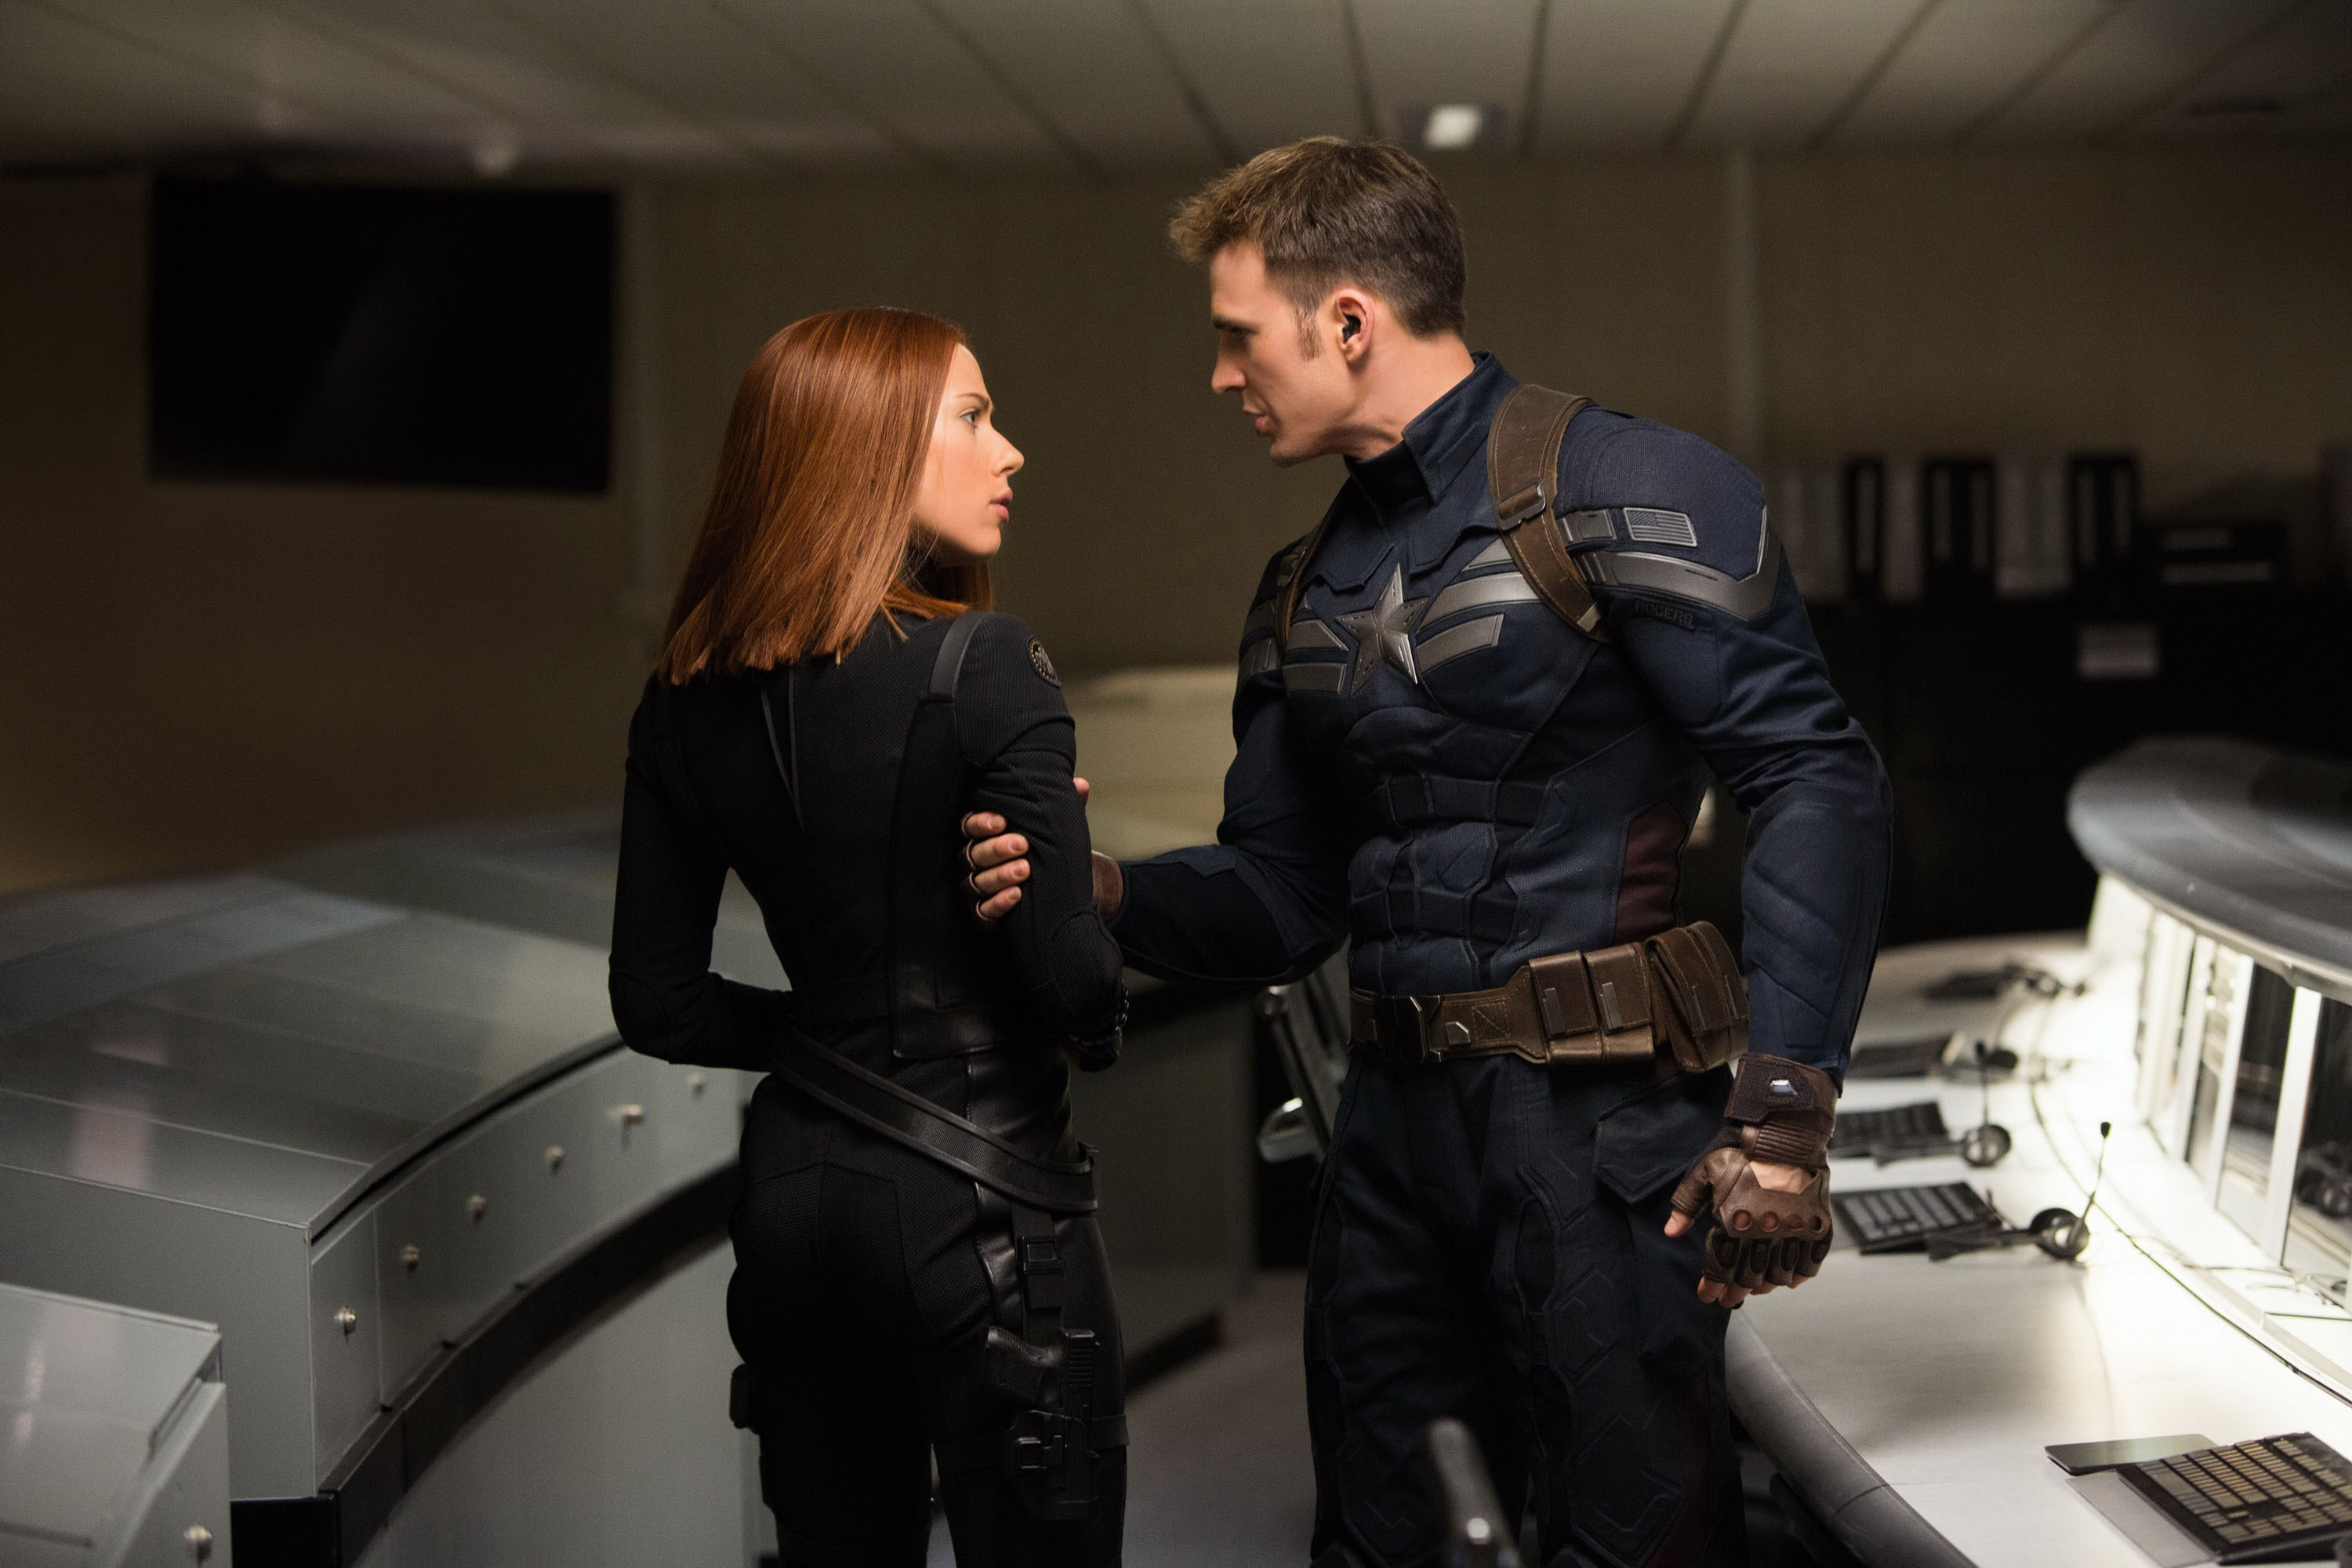 captain-america-and-black-widow